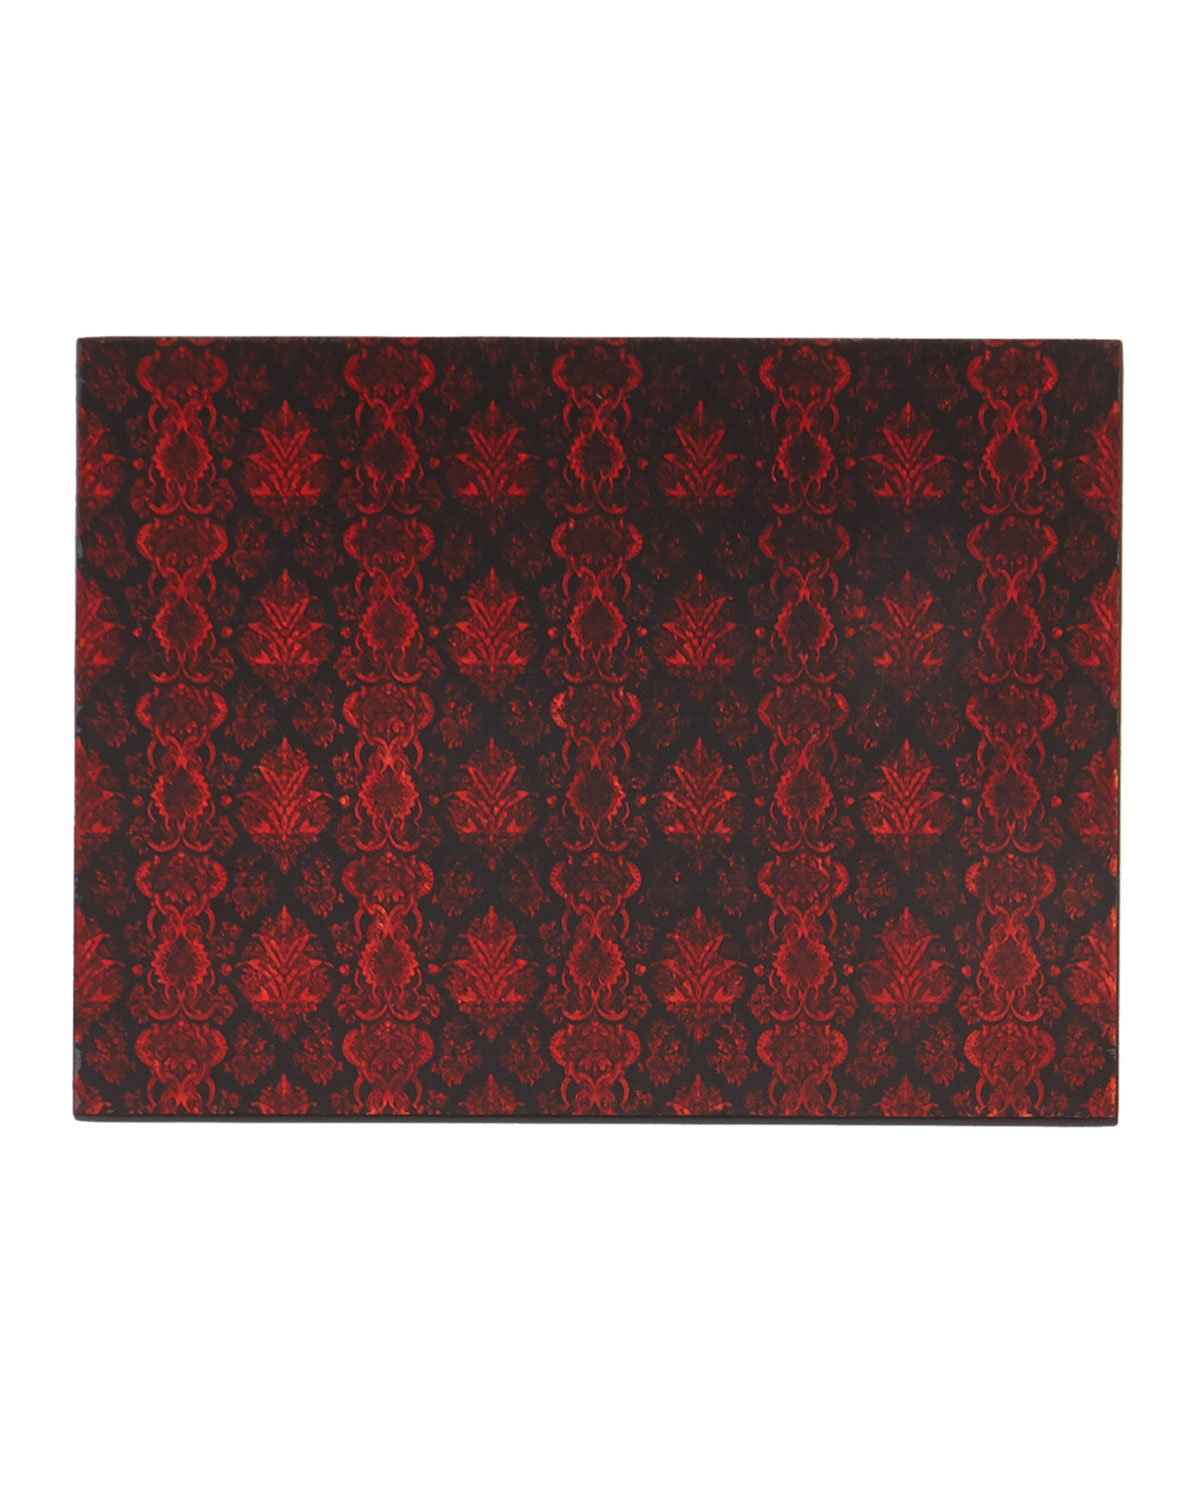 Nomi K Home decors LACE GLASS PAINTED MIRROR PLACEMAT, RED/BLACK